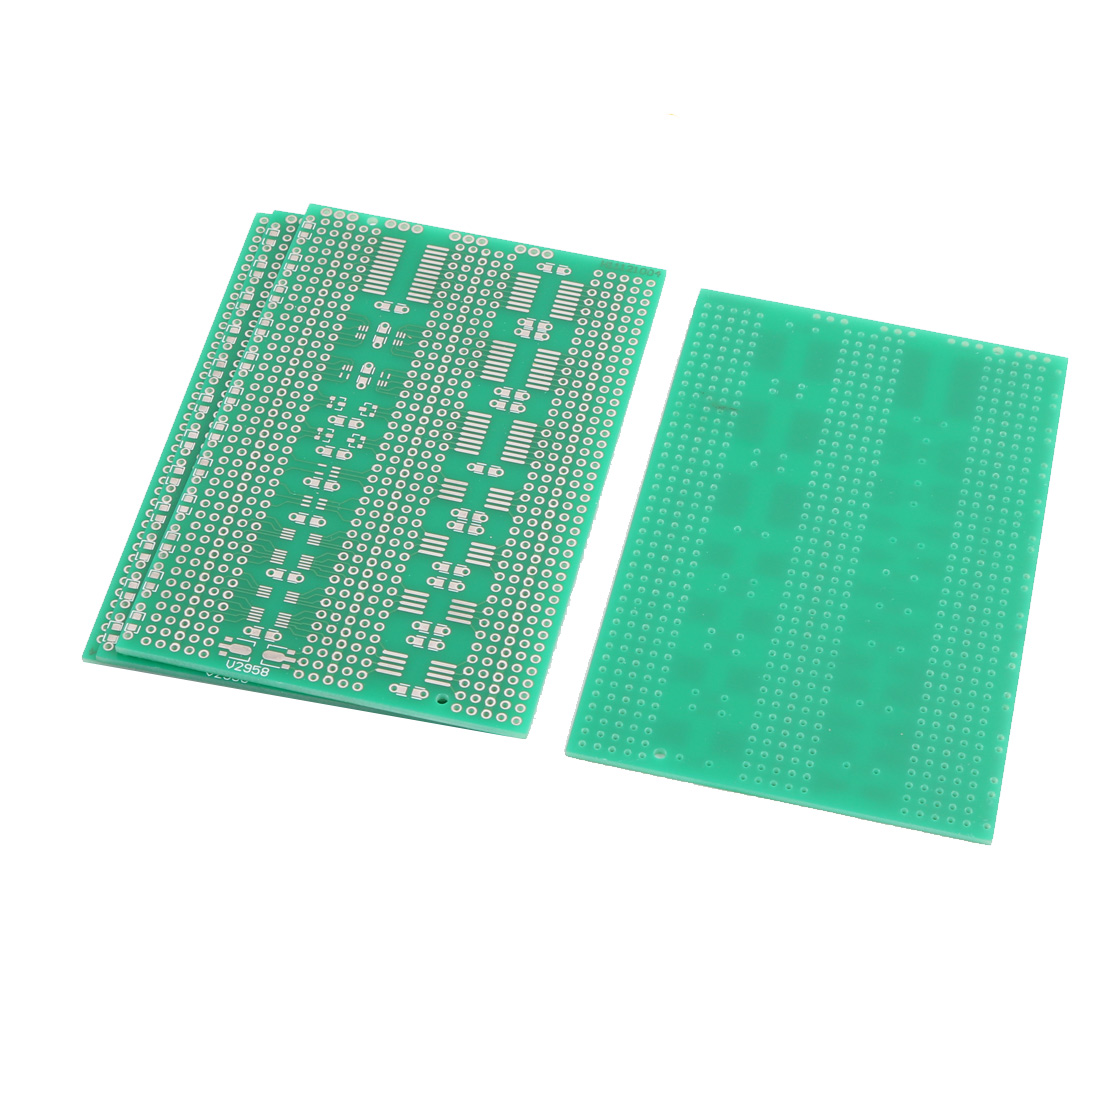 4 Pcs Single Sided Multi-package Patch PCB Print Circuit Board 7 x 11CM Green